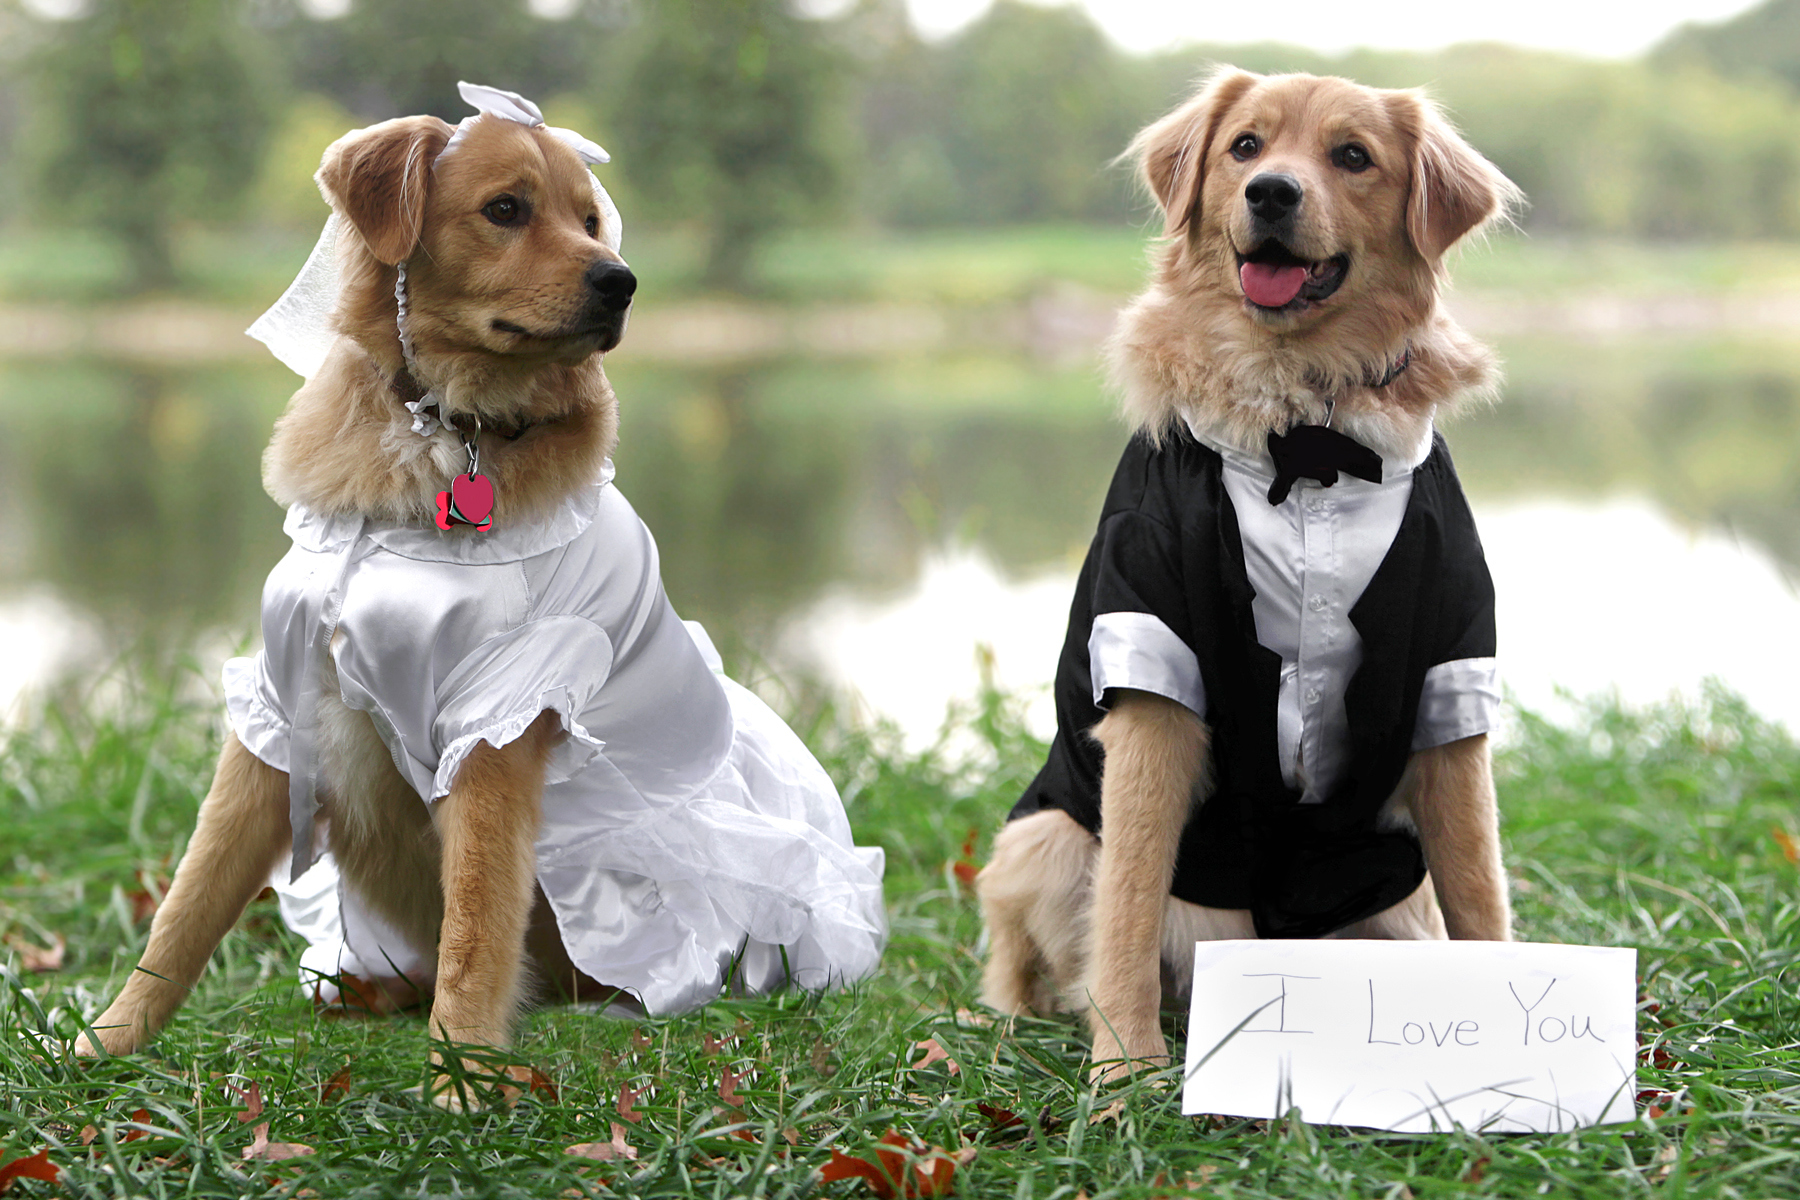 Dogs in Wedding puptials